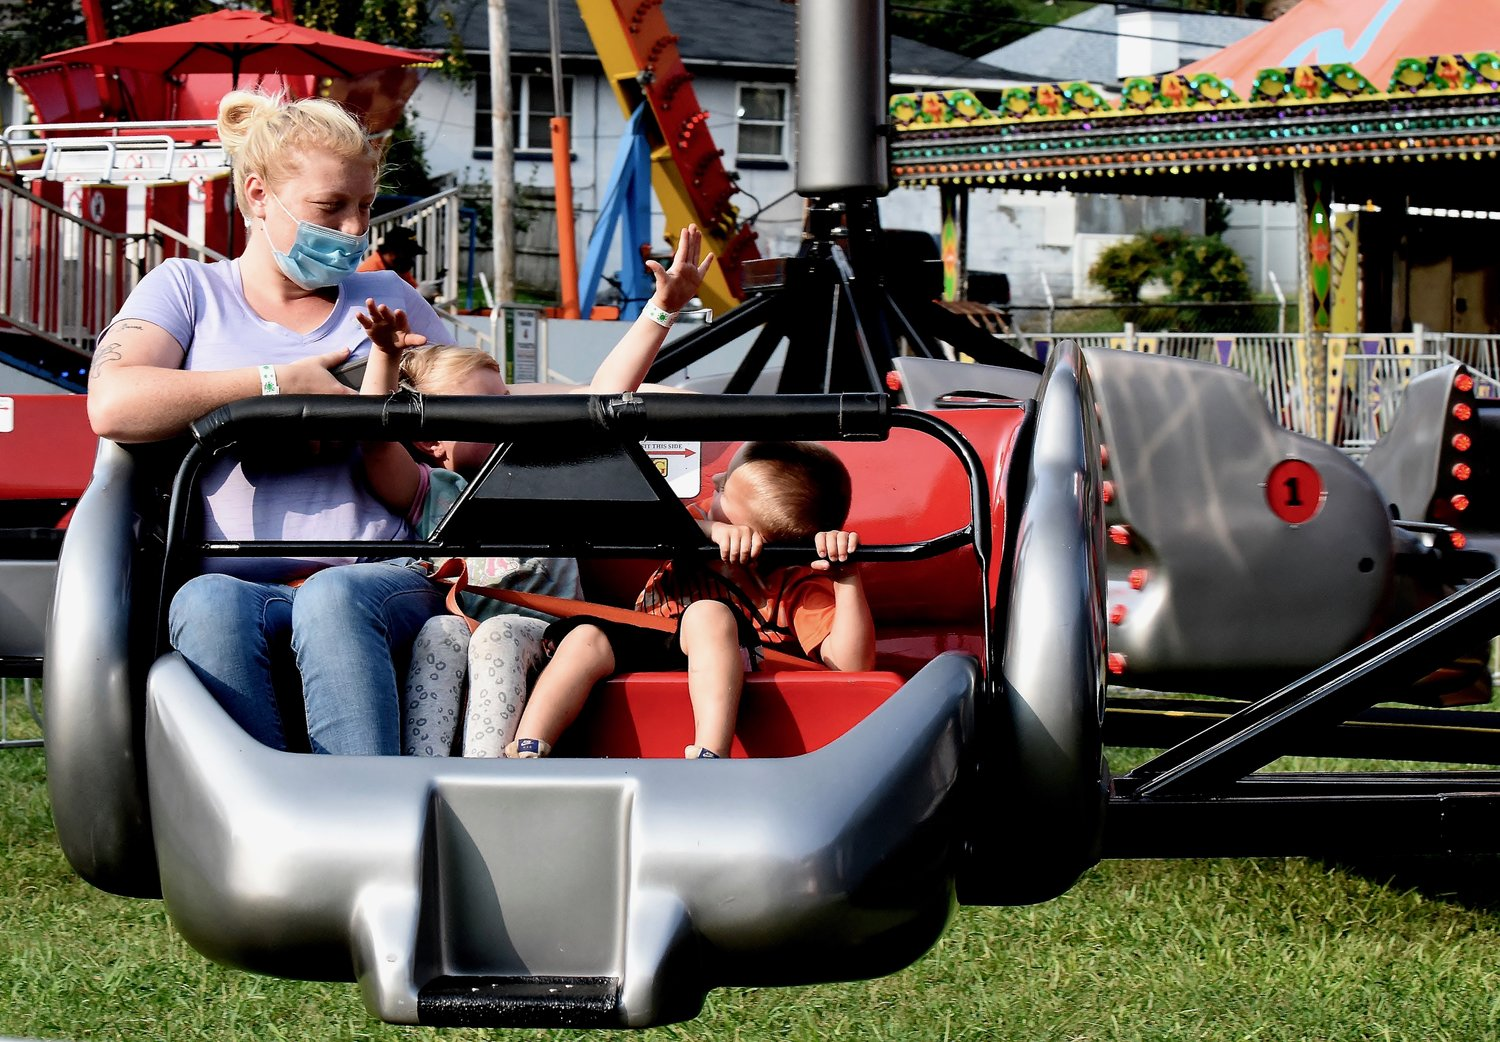 Along with 5-year-old Mallory Culver, center, and 3-year-old Jayden Culver, Haley Dover of Adairsville enjoys Peachtree Rides' carnival at American Legion Carl Boyd Post 42's Fairgrounds Wednesday.